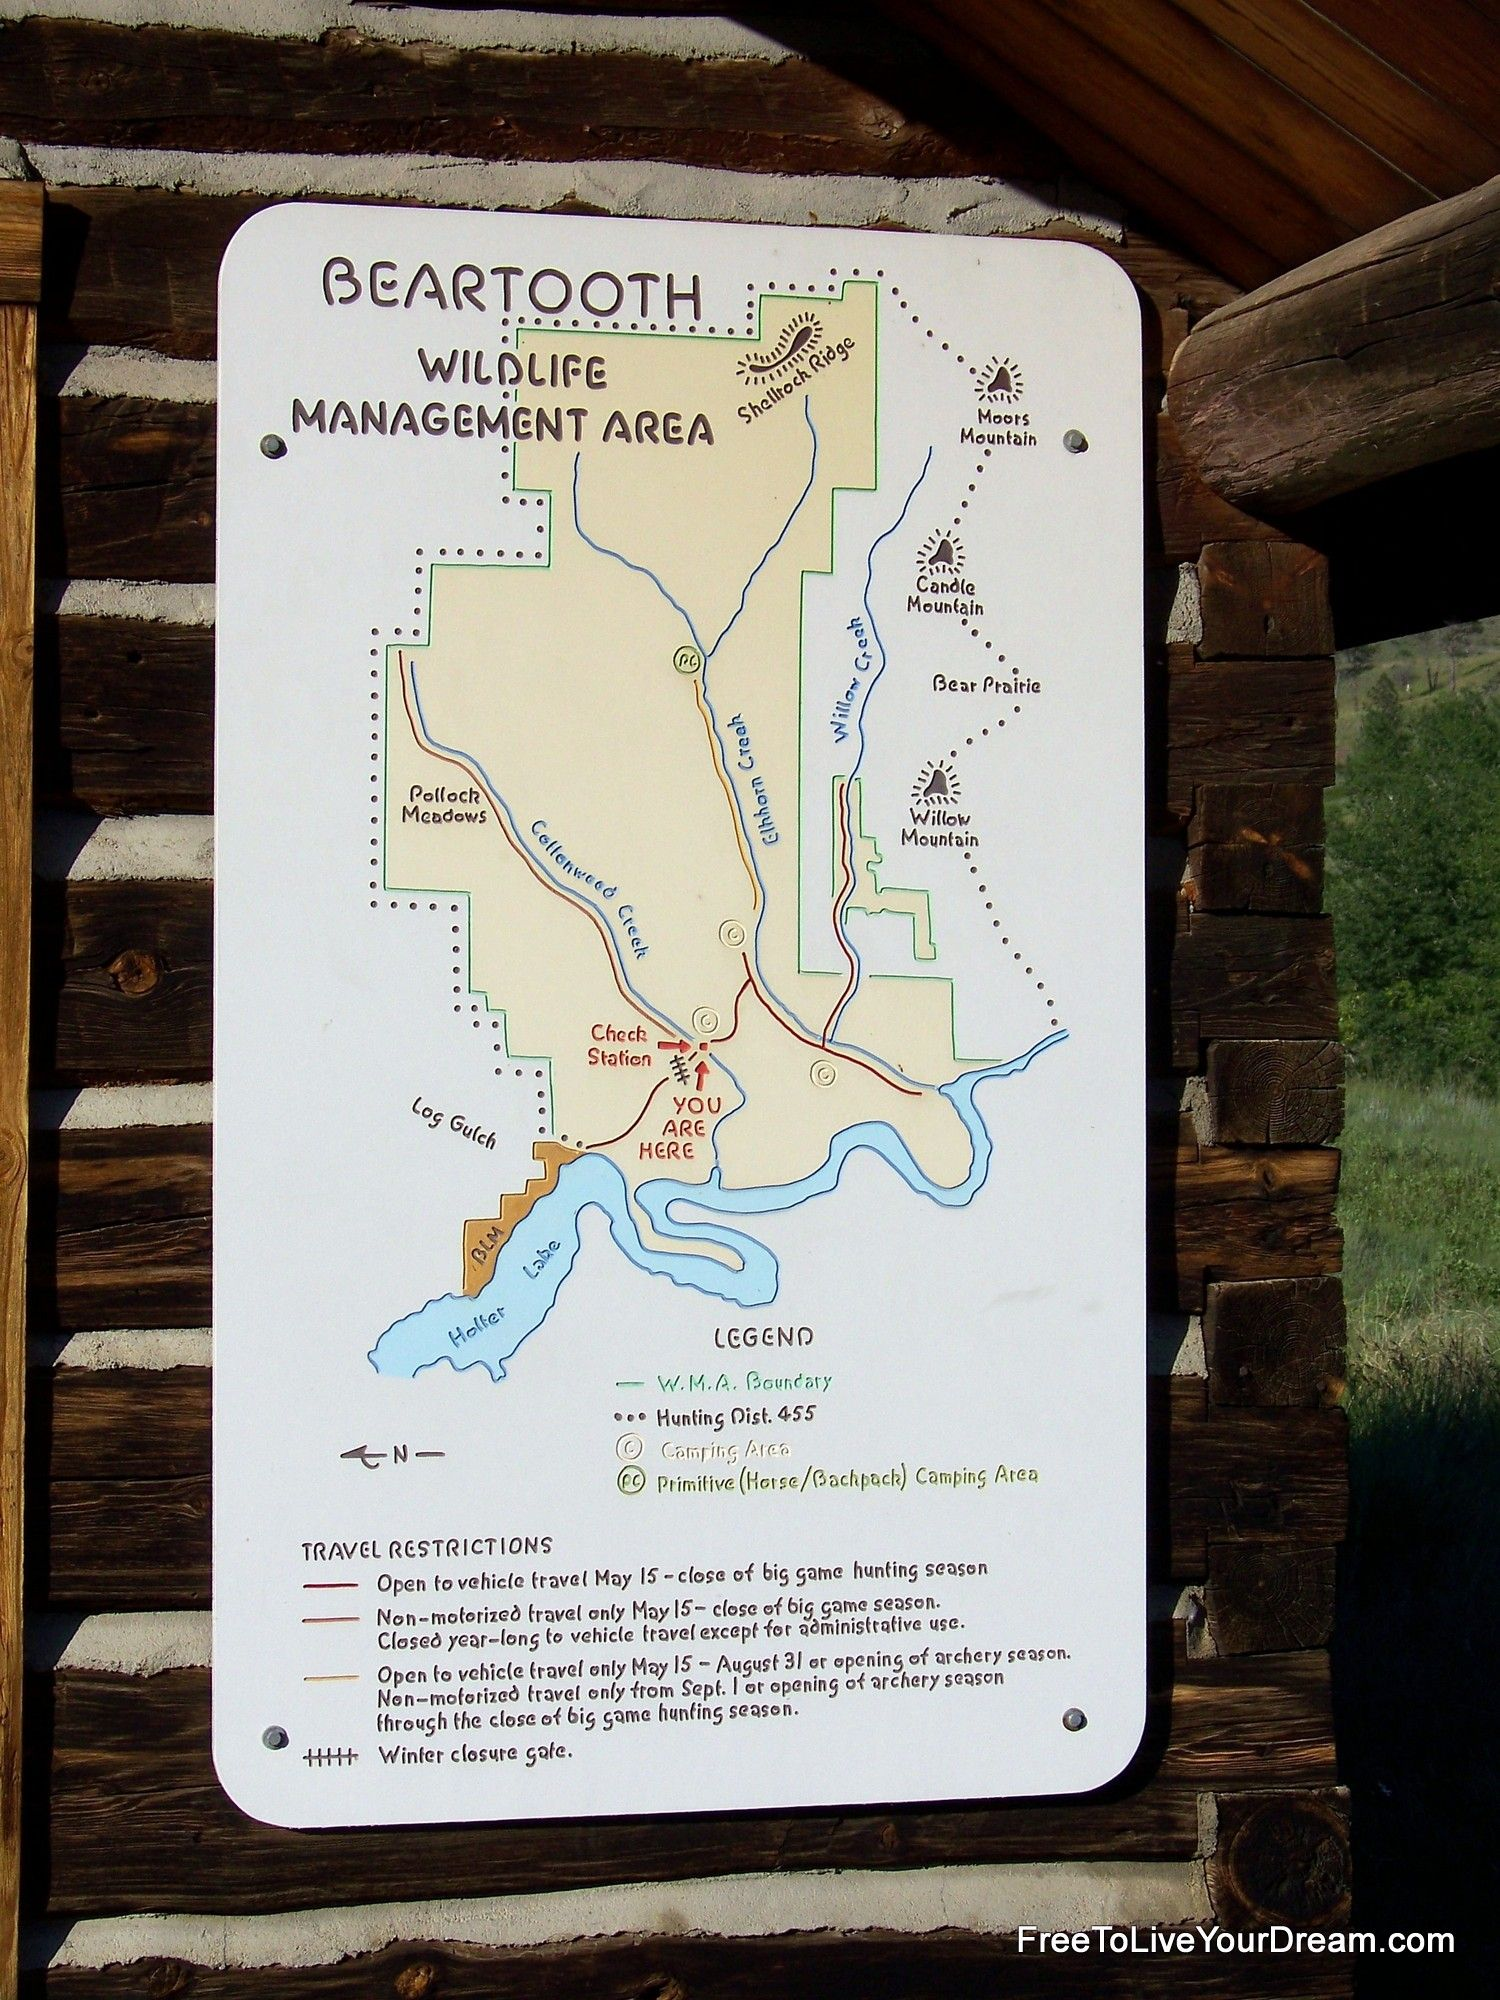 Map for The Beartooth Wildlife Management Area WMA to the North